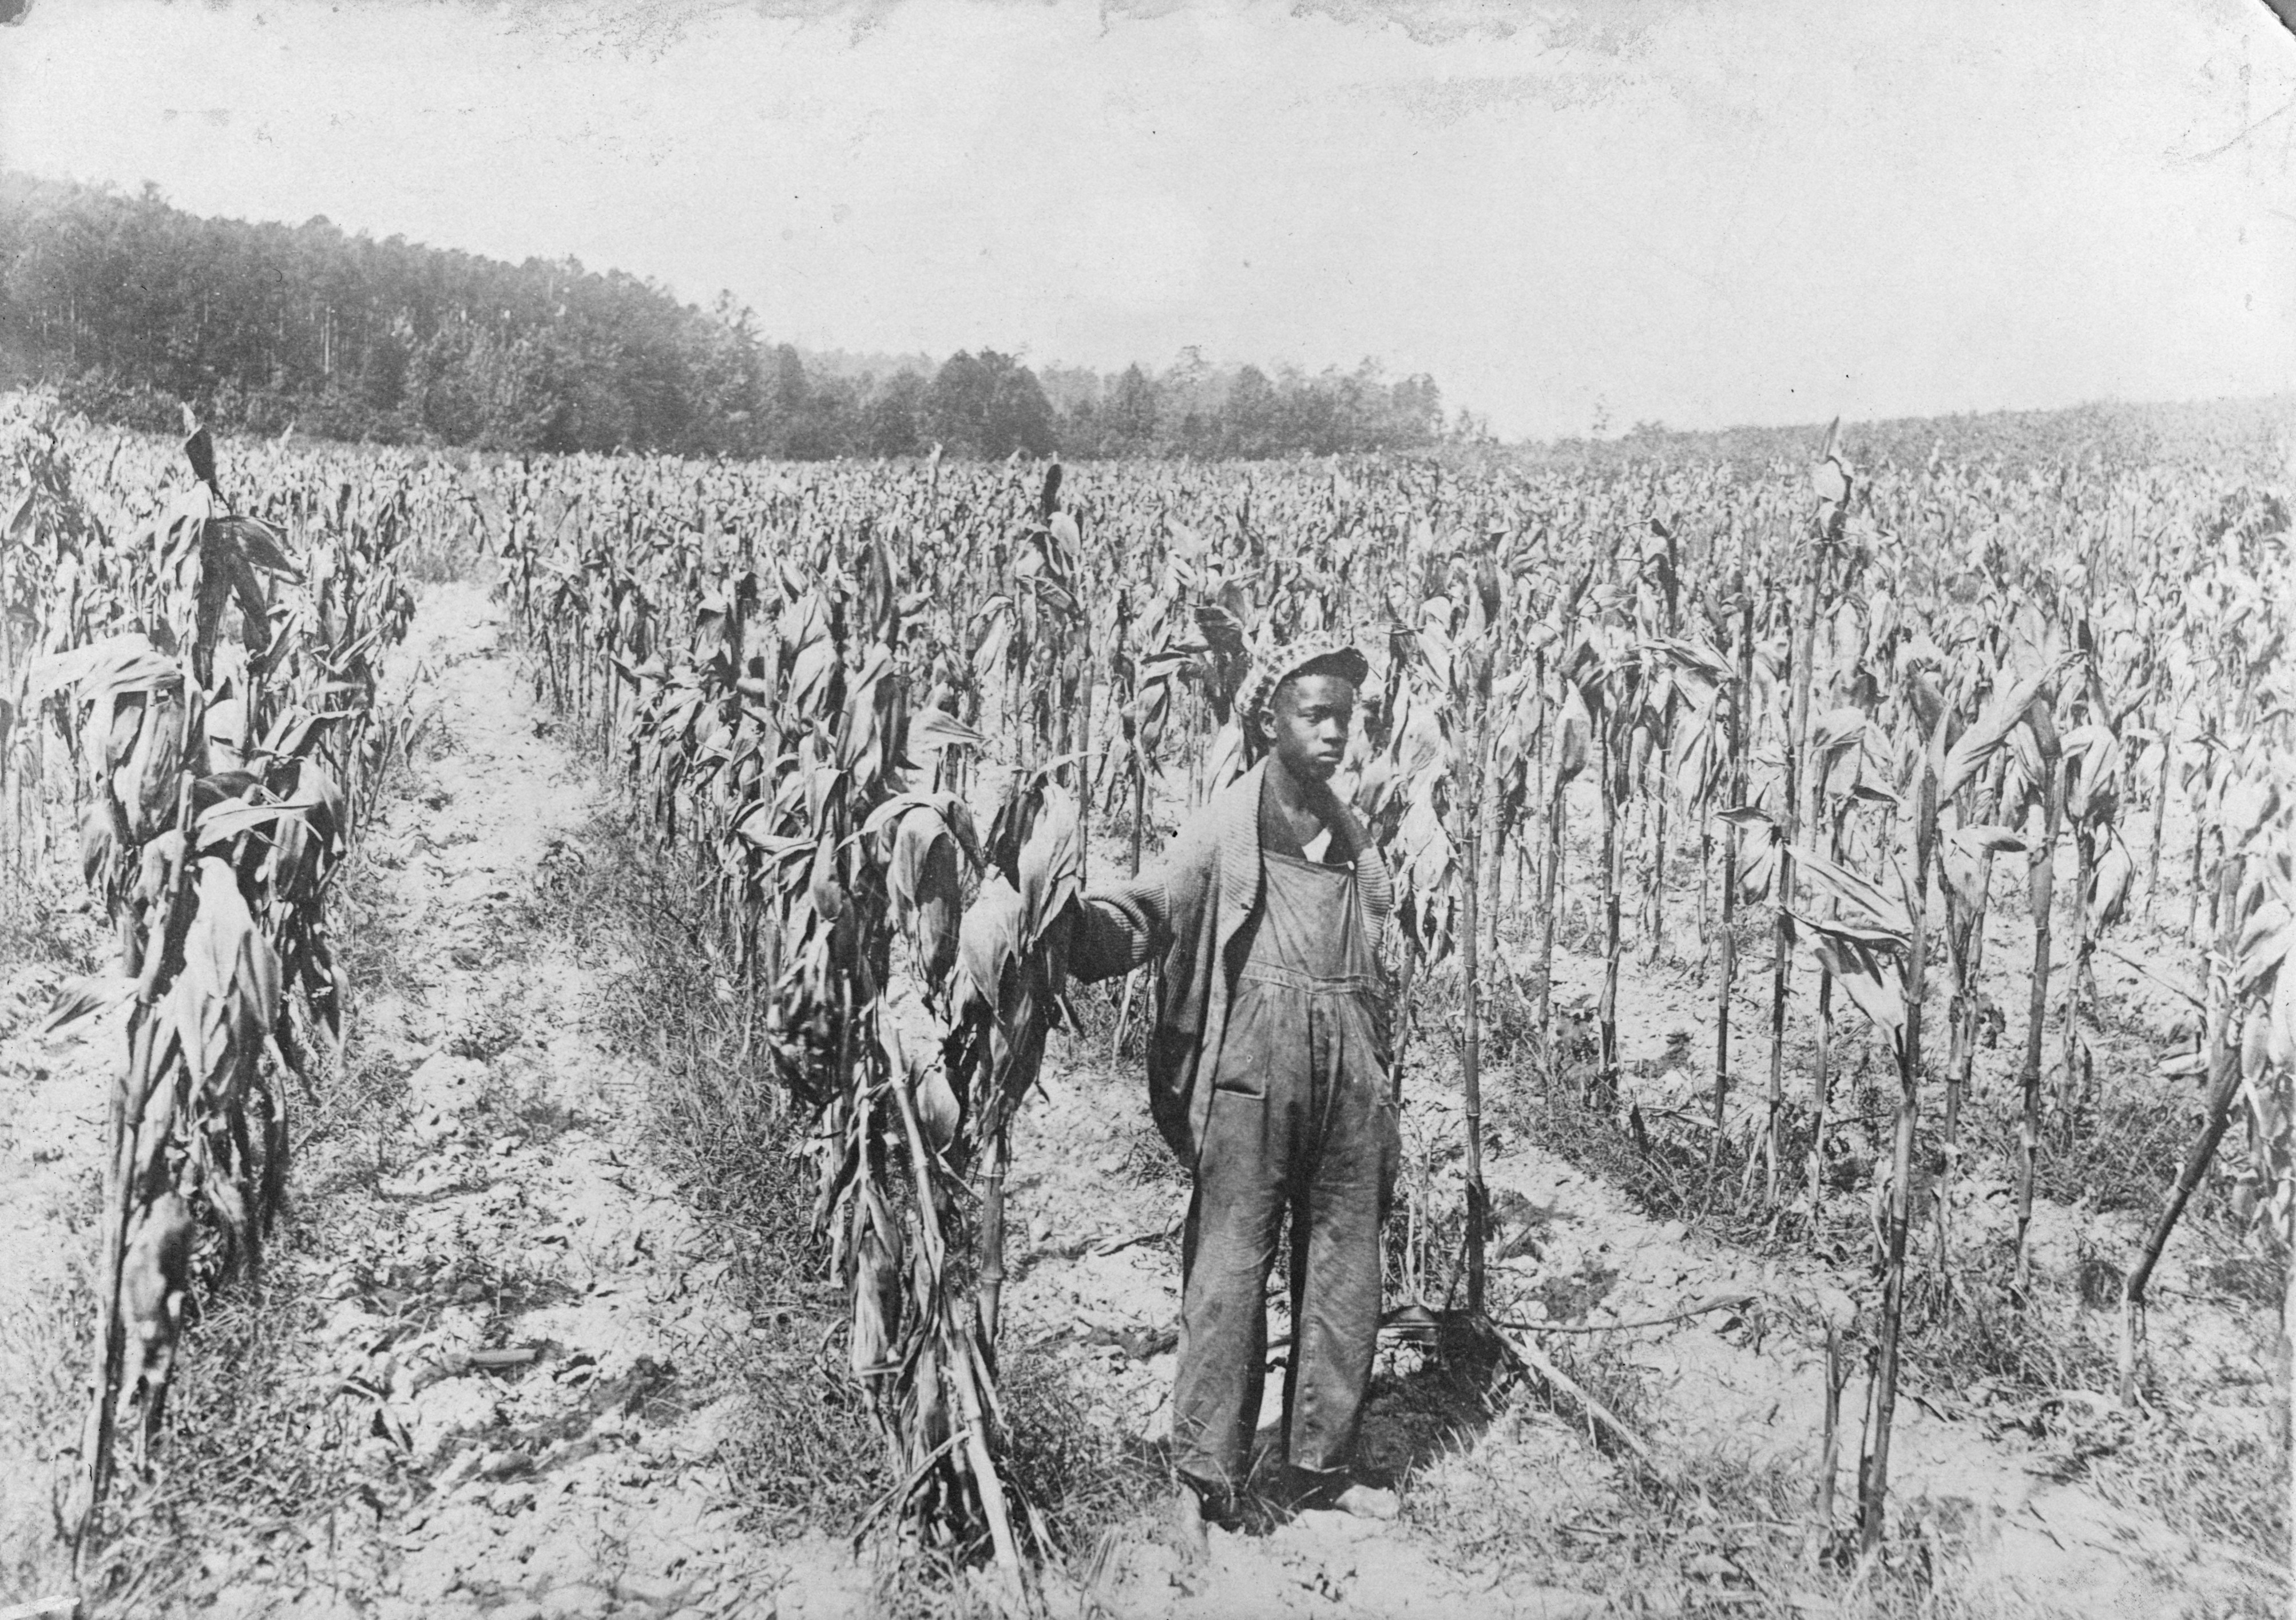 Herman Peebles of Wake County, a state prize winner, standing in a corn field